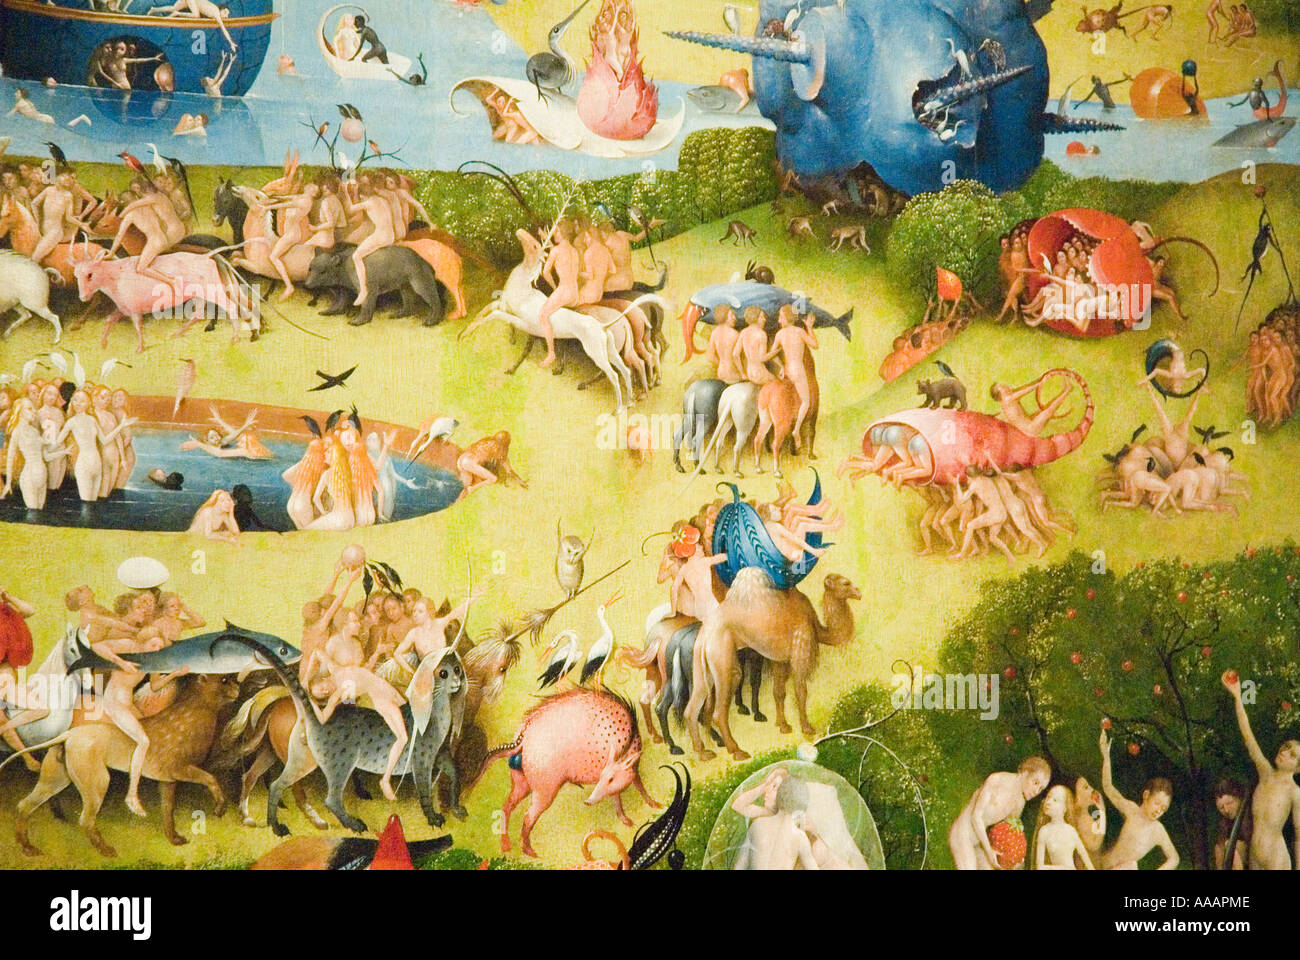 The Garden Of Earthly Delights Painting By Hieronymus